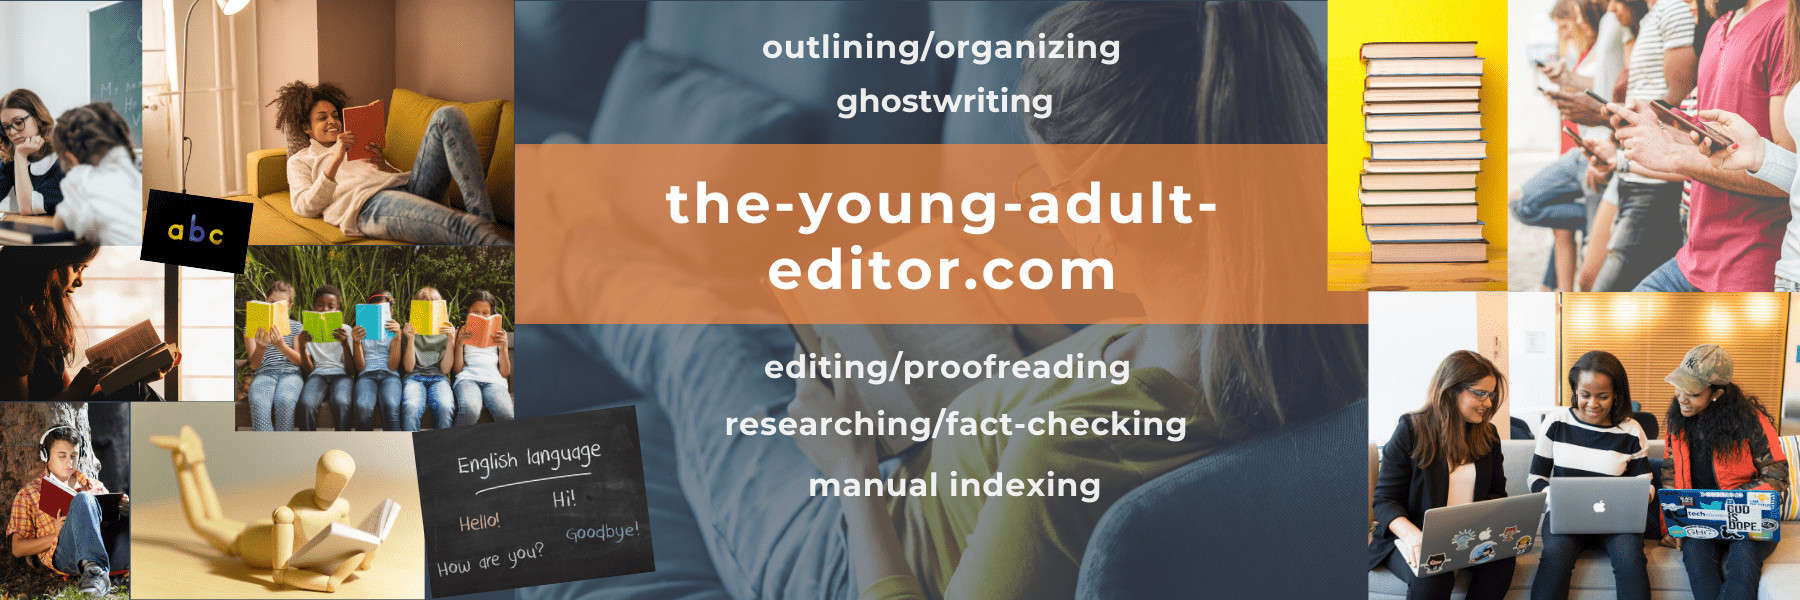 Thank you for visiting the-young-adult-editor, a division of the-freelance-editor, for help with outlining/organizing, ghostwriting, editing/proofreading, researching/fact-checking, and manual indexing.